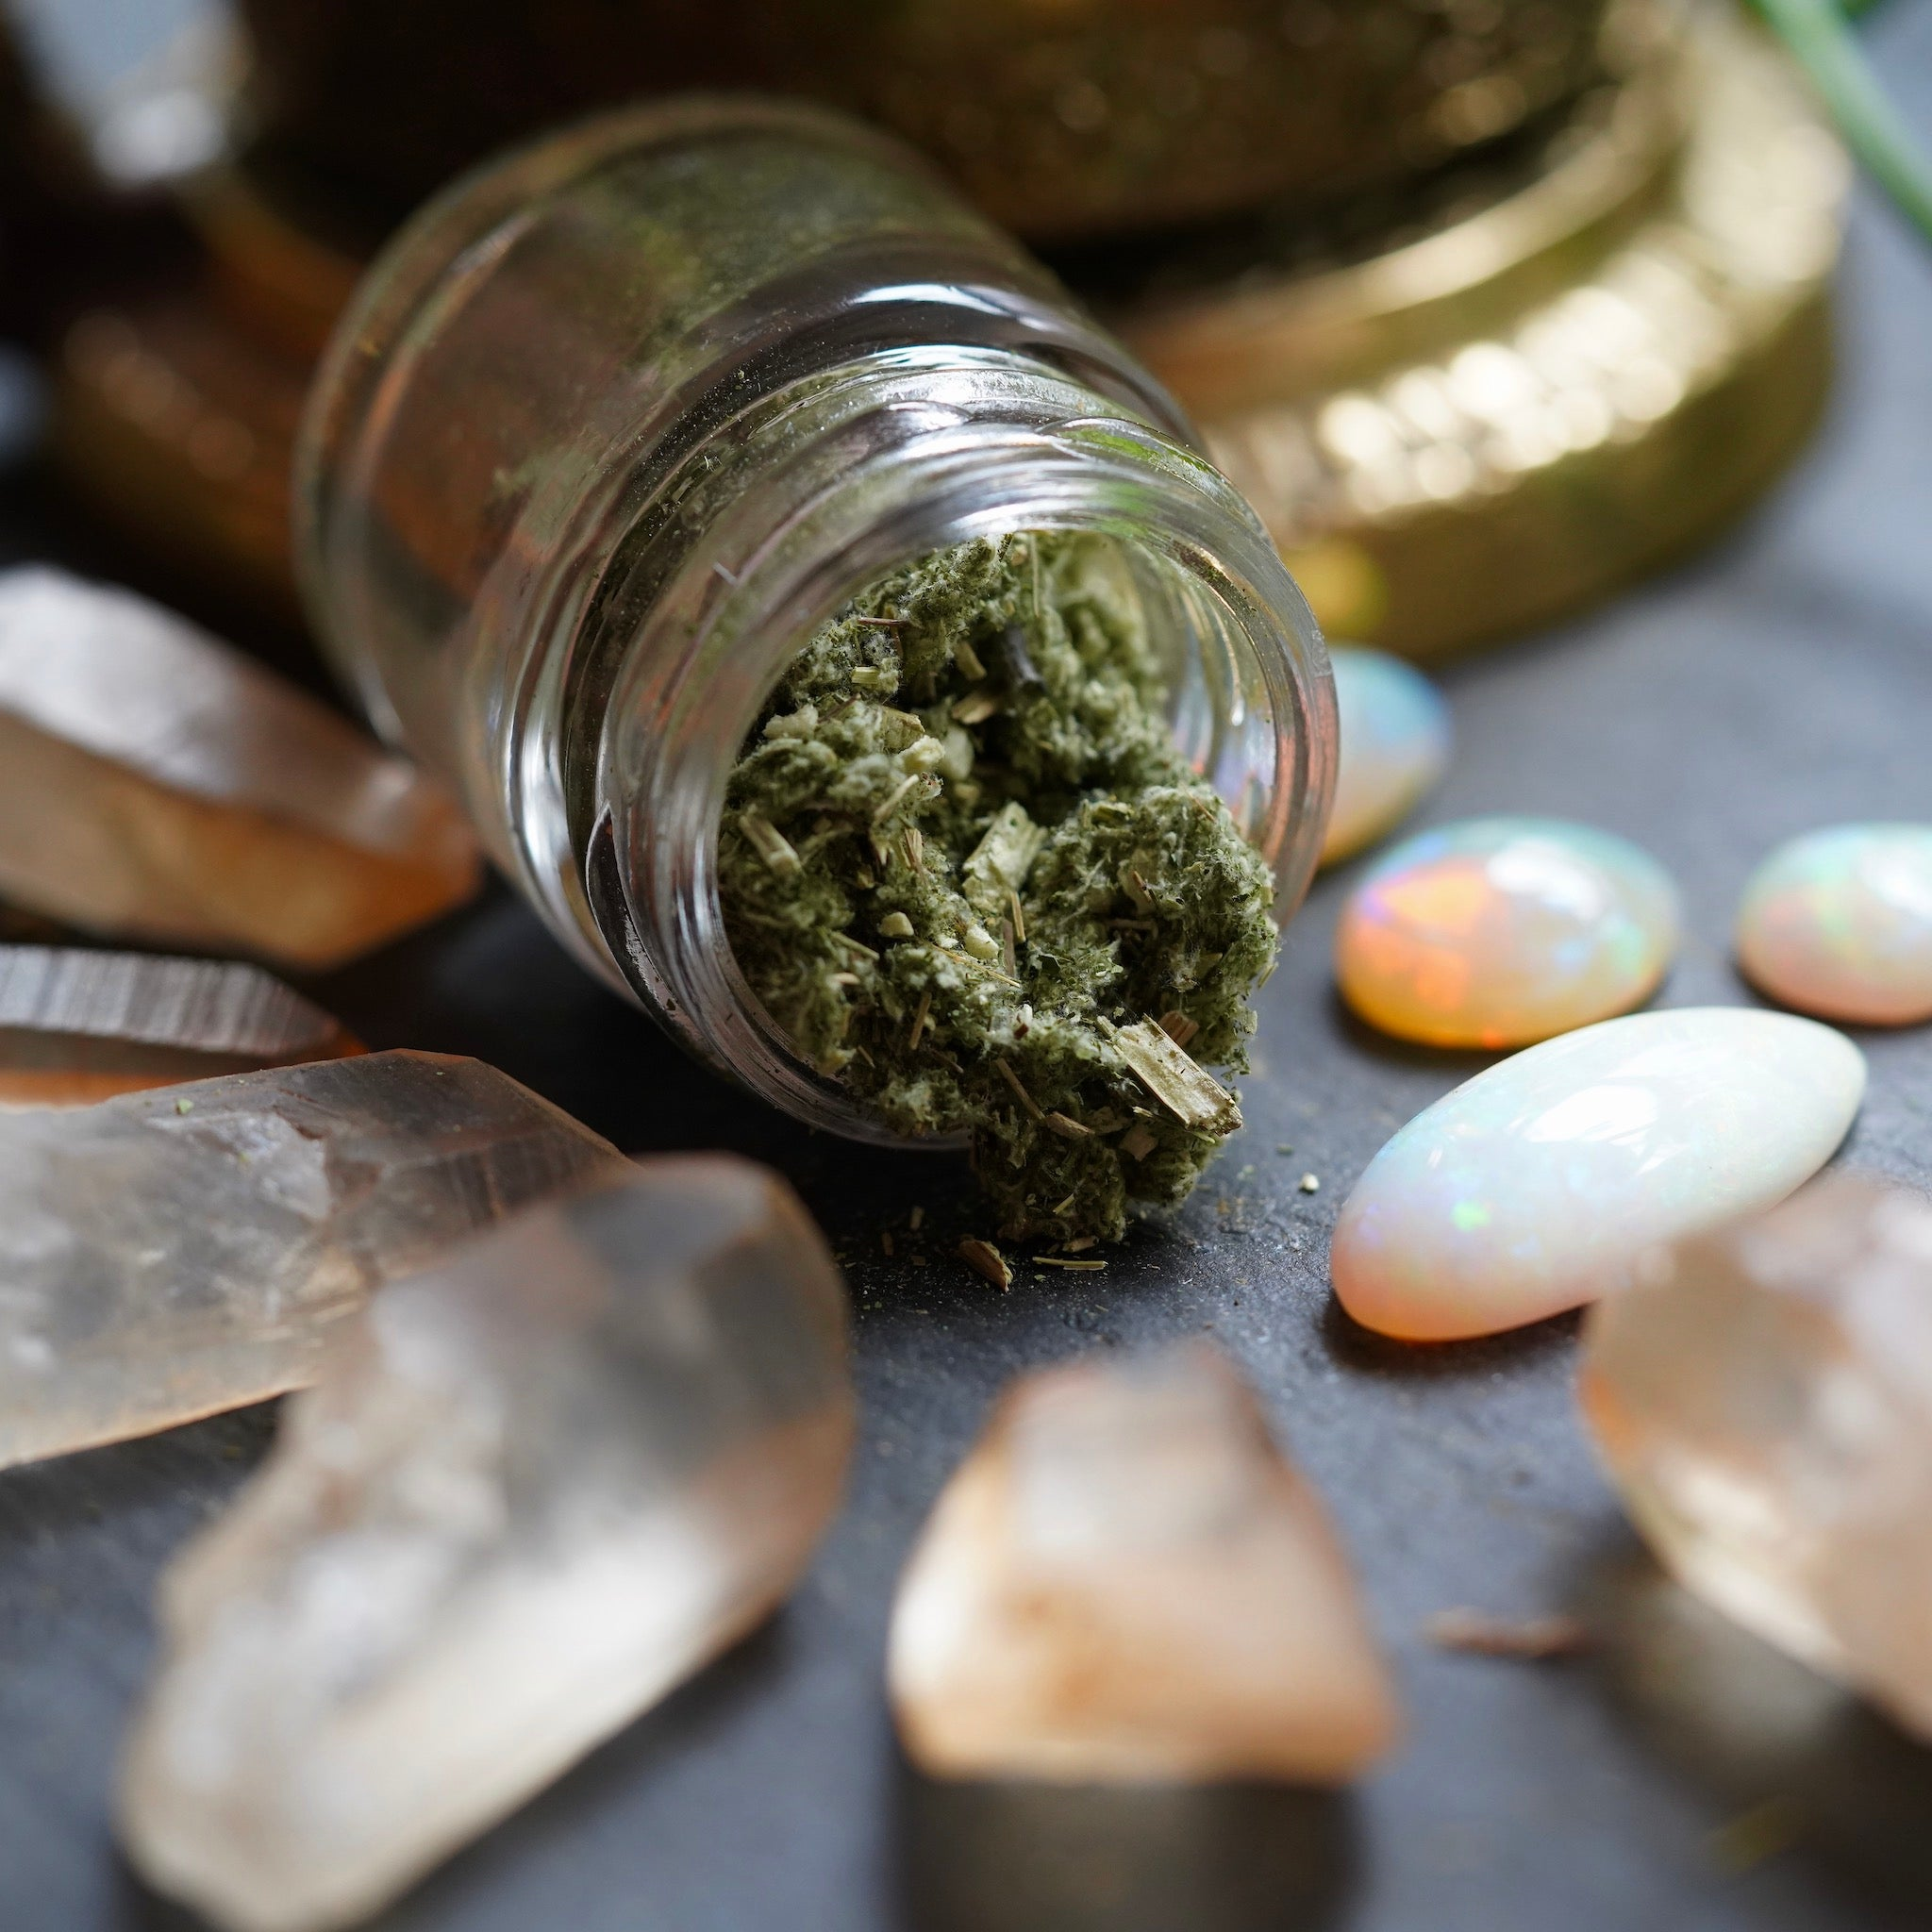 Raw Mugwort Herb spilling out of glass jar surrounded by Ethiopian opals and Hematite Quartz Crystal Points on a black background